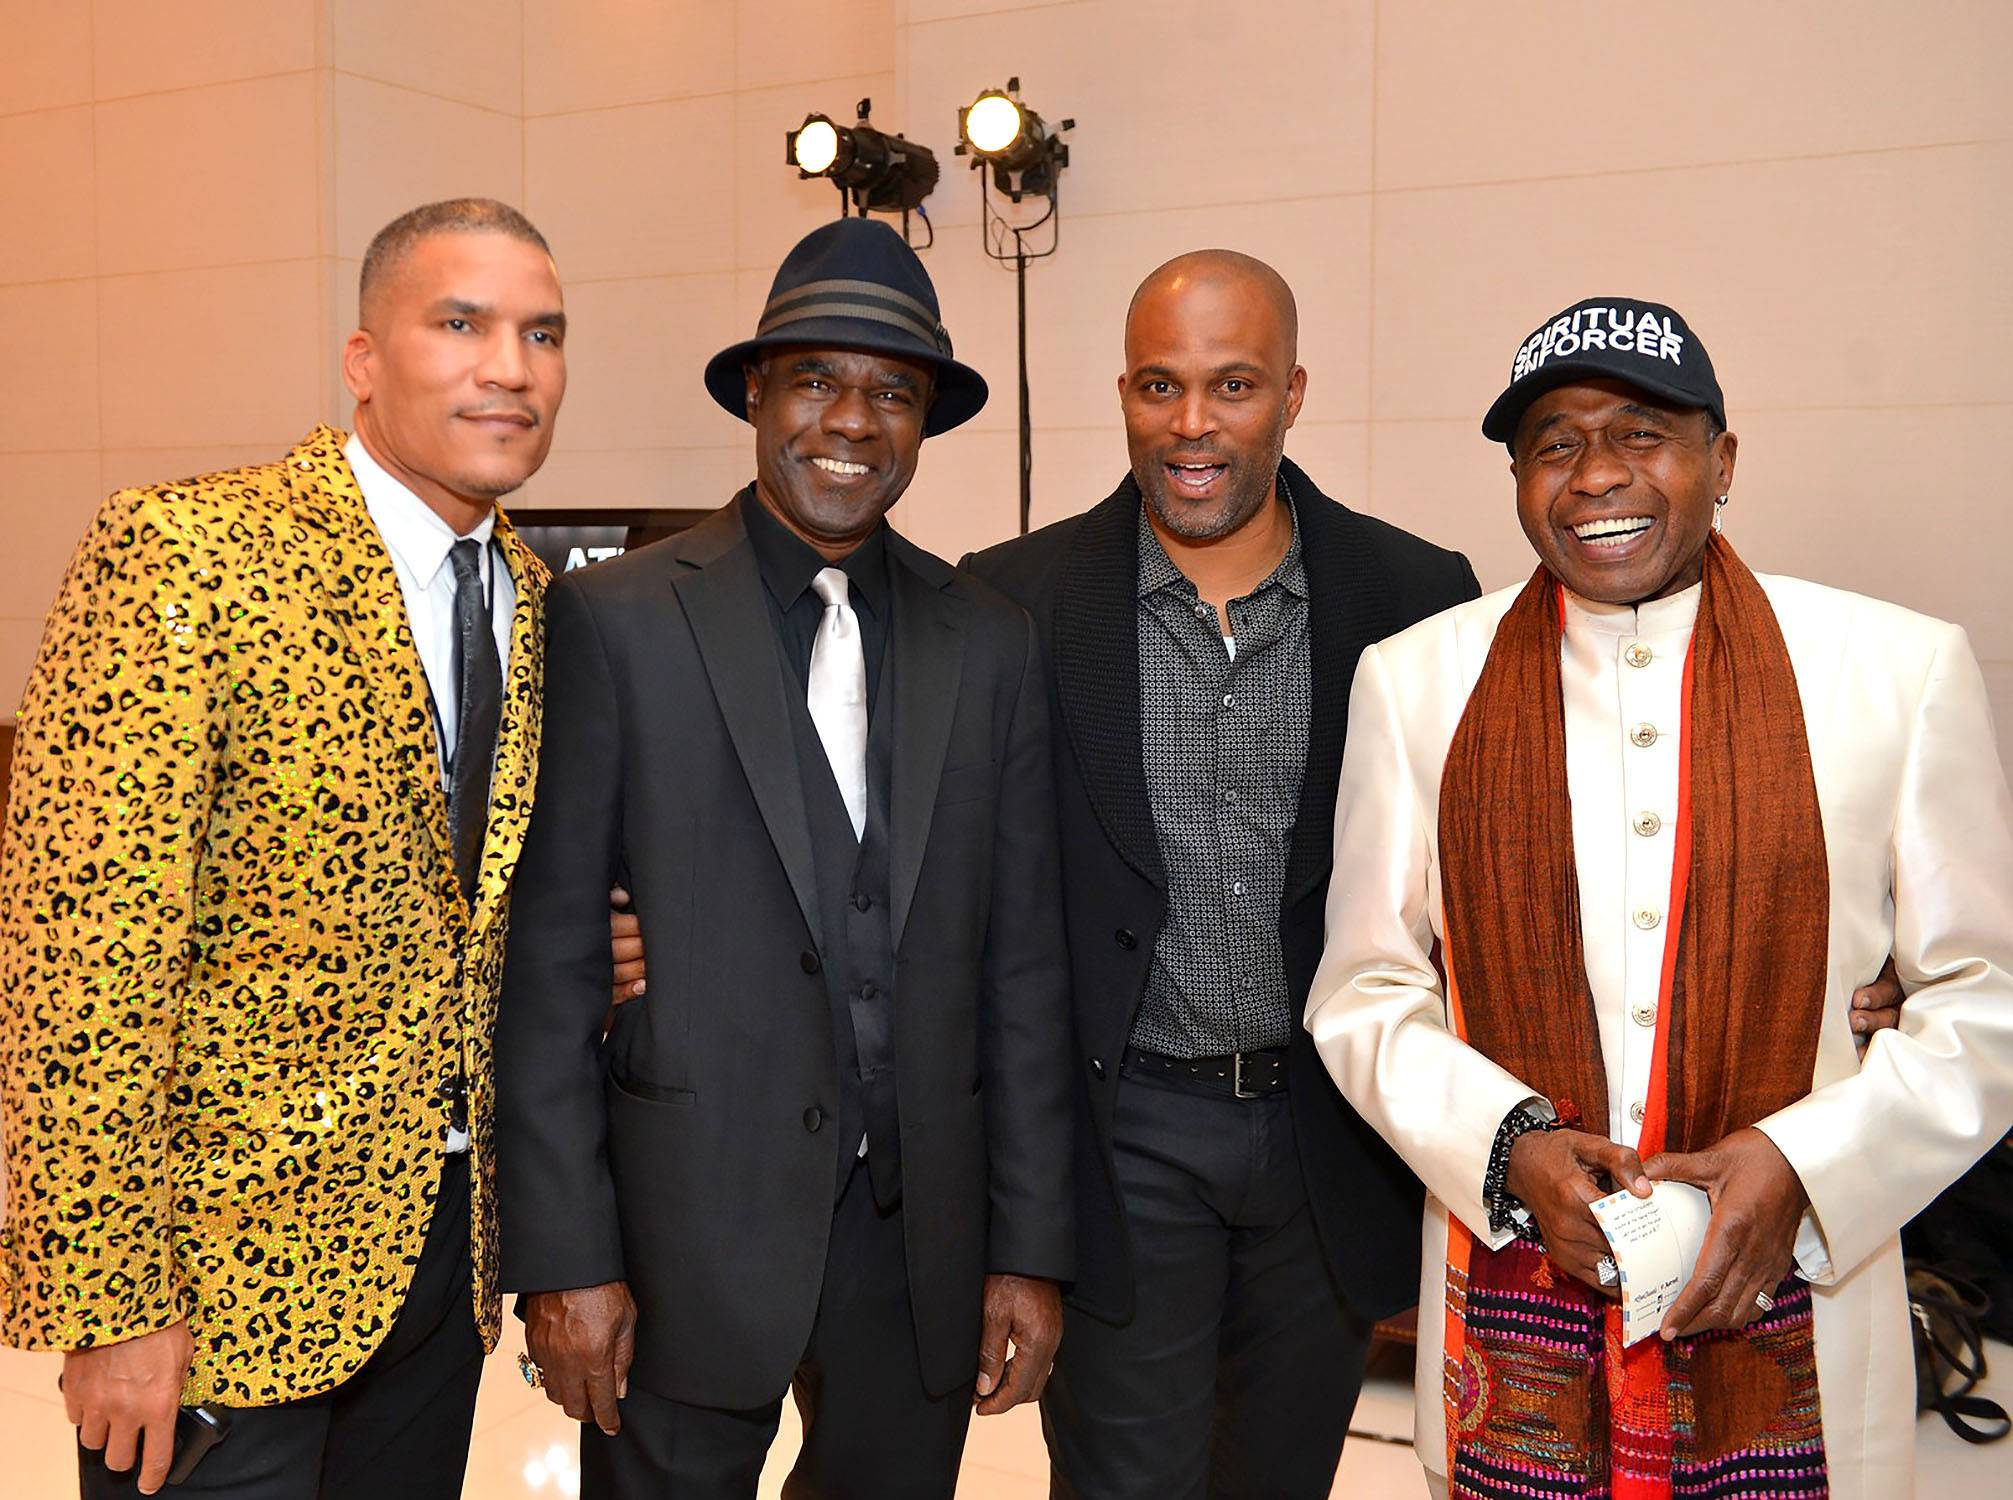 A Lot of Power in One Place - Executive Vice President and General Manager of CENTRIC, Paxton Baker (far left) with Glynn Turman, Chris Spencer and Ben Vereen all stand like kings.  (Photo: Phelan Marc/BET)